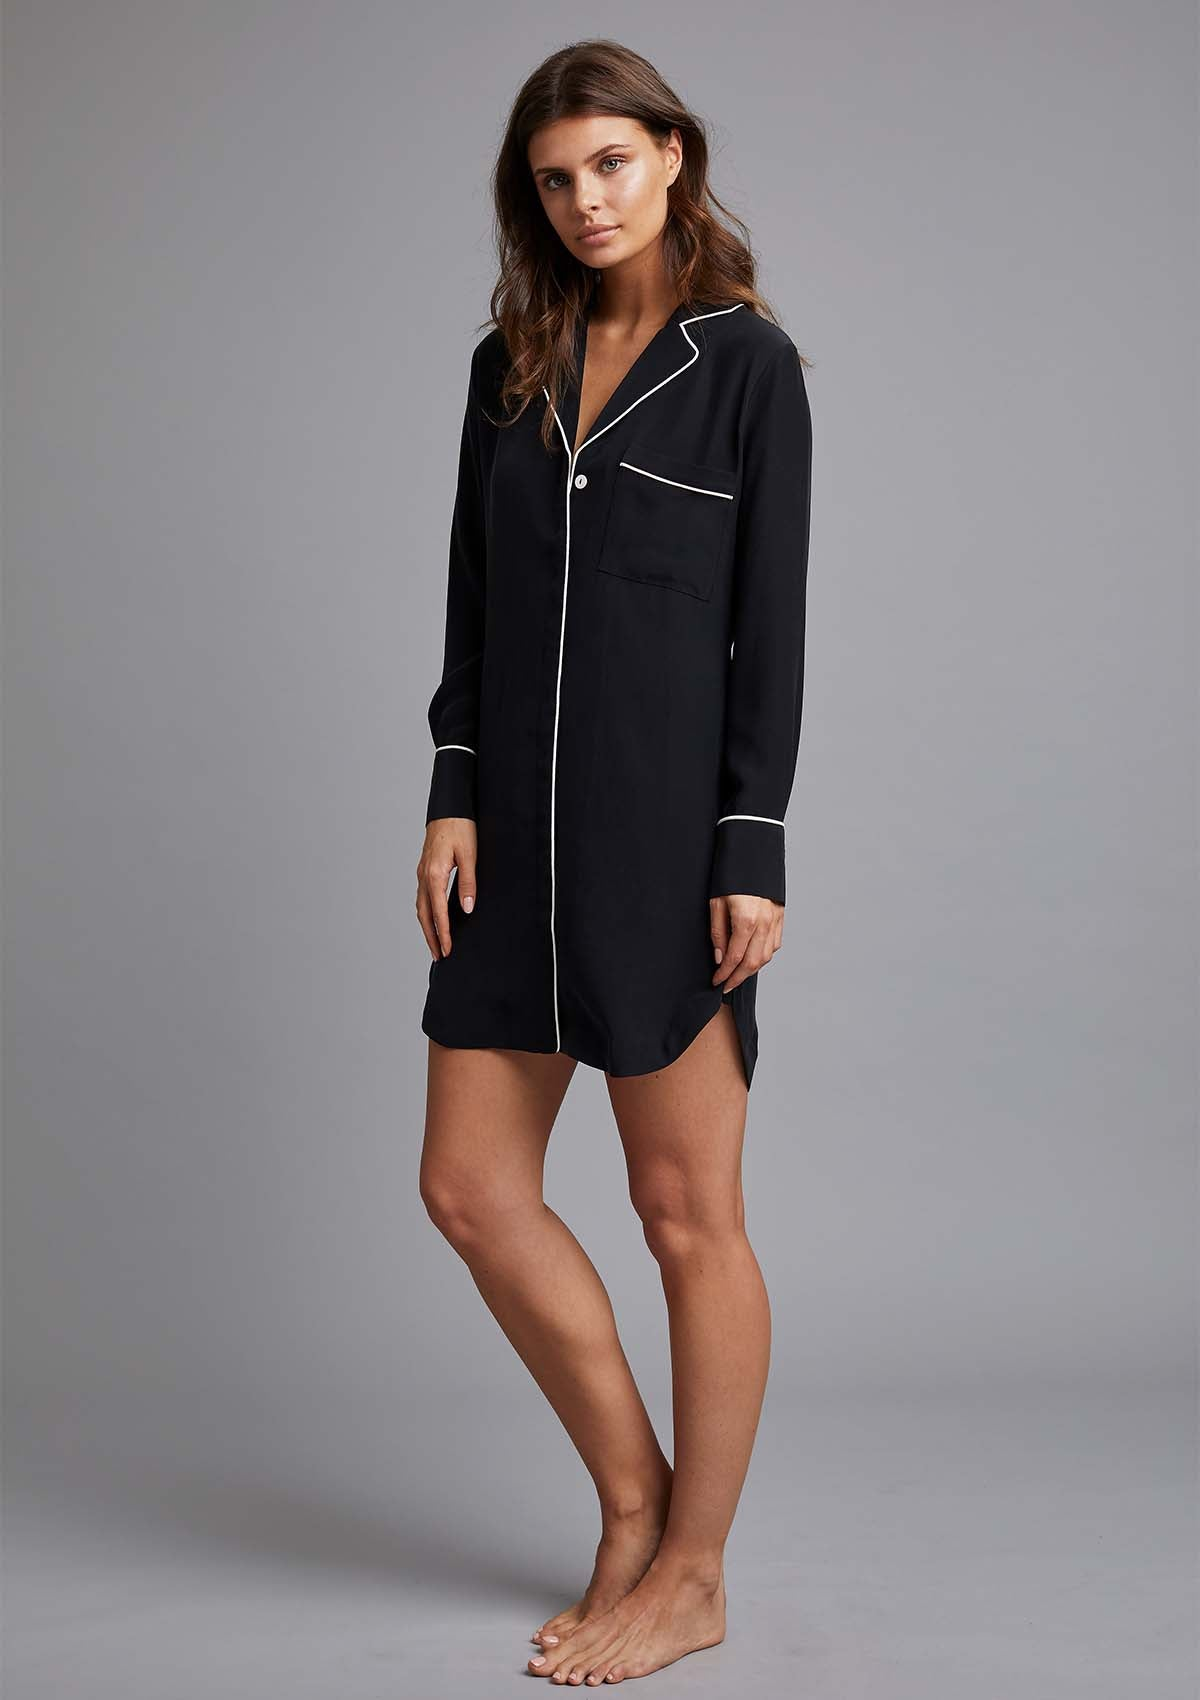 AVA NIGHTSHIRT in NERO